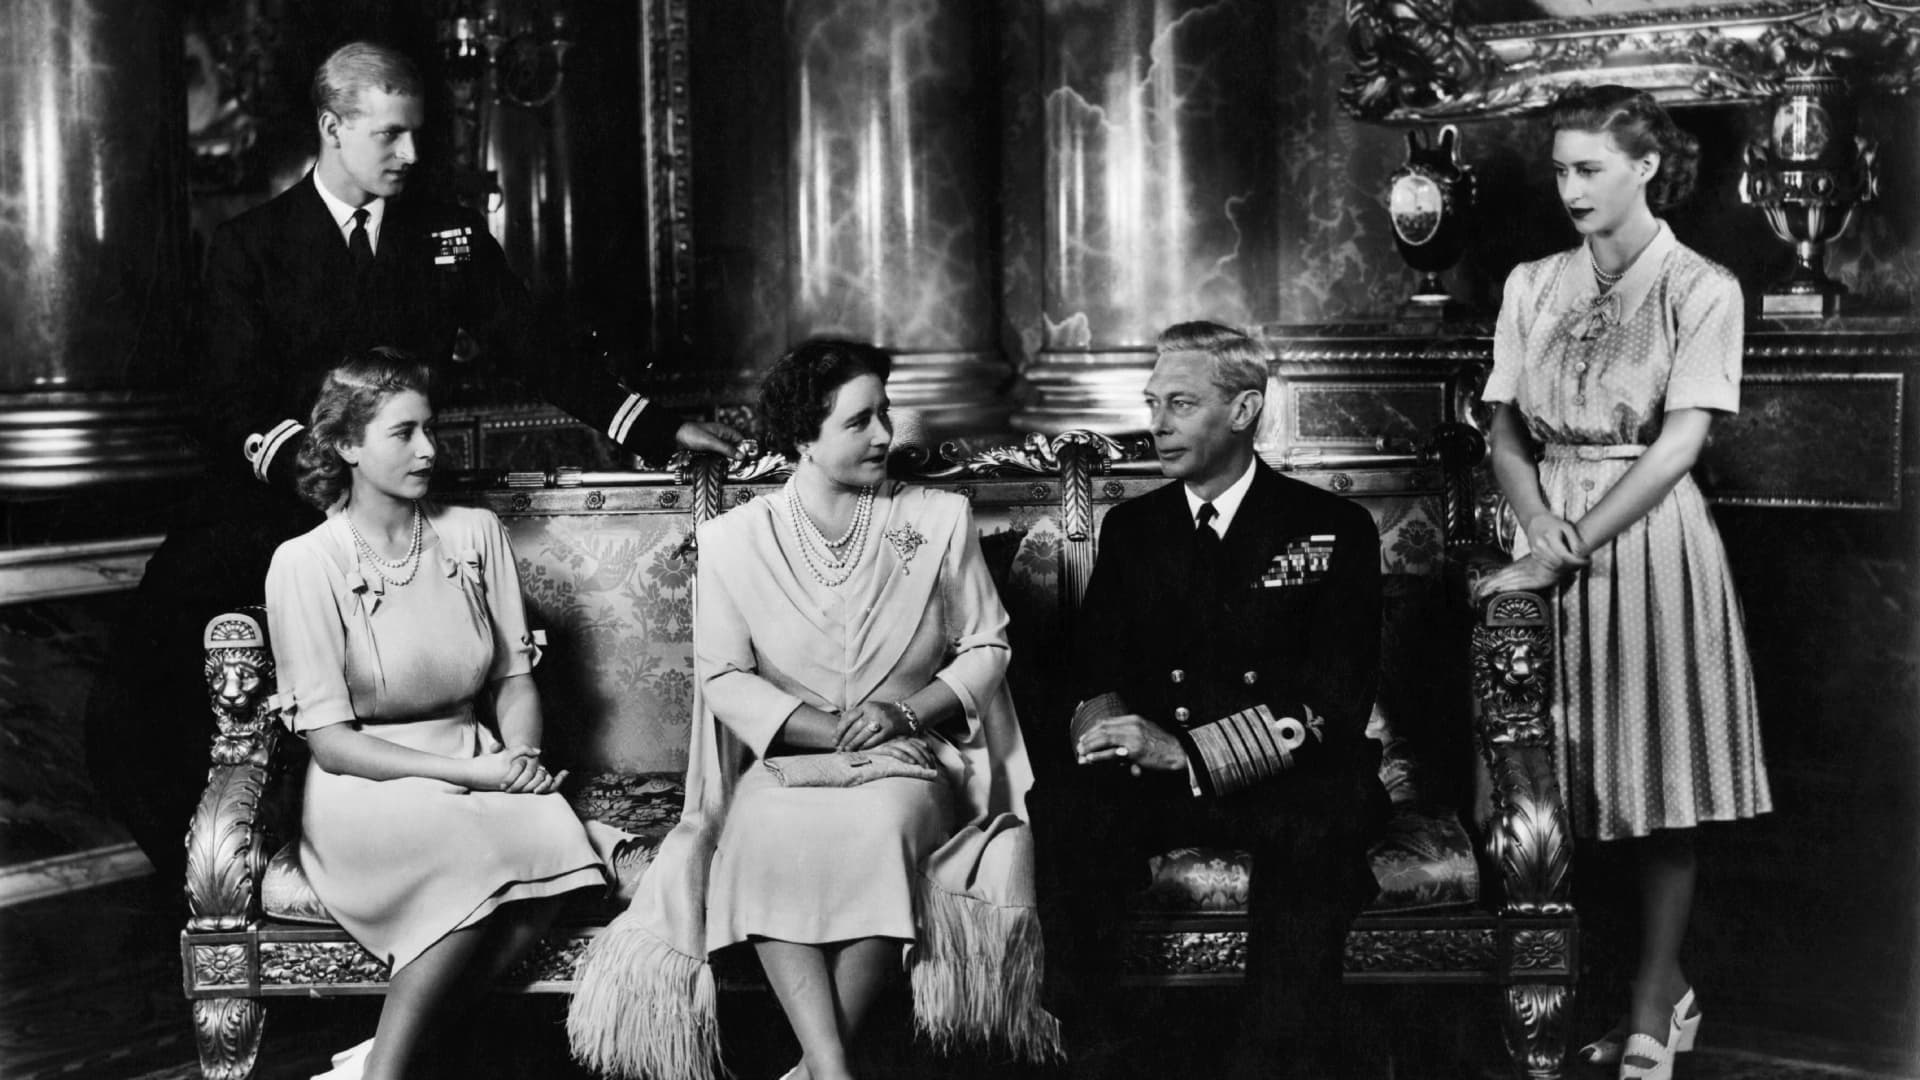 Royal Family with Lord Mountbatten circa 1940.